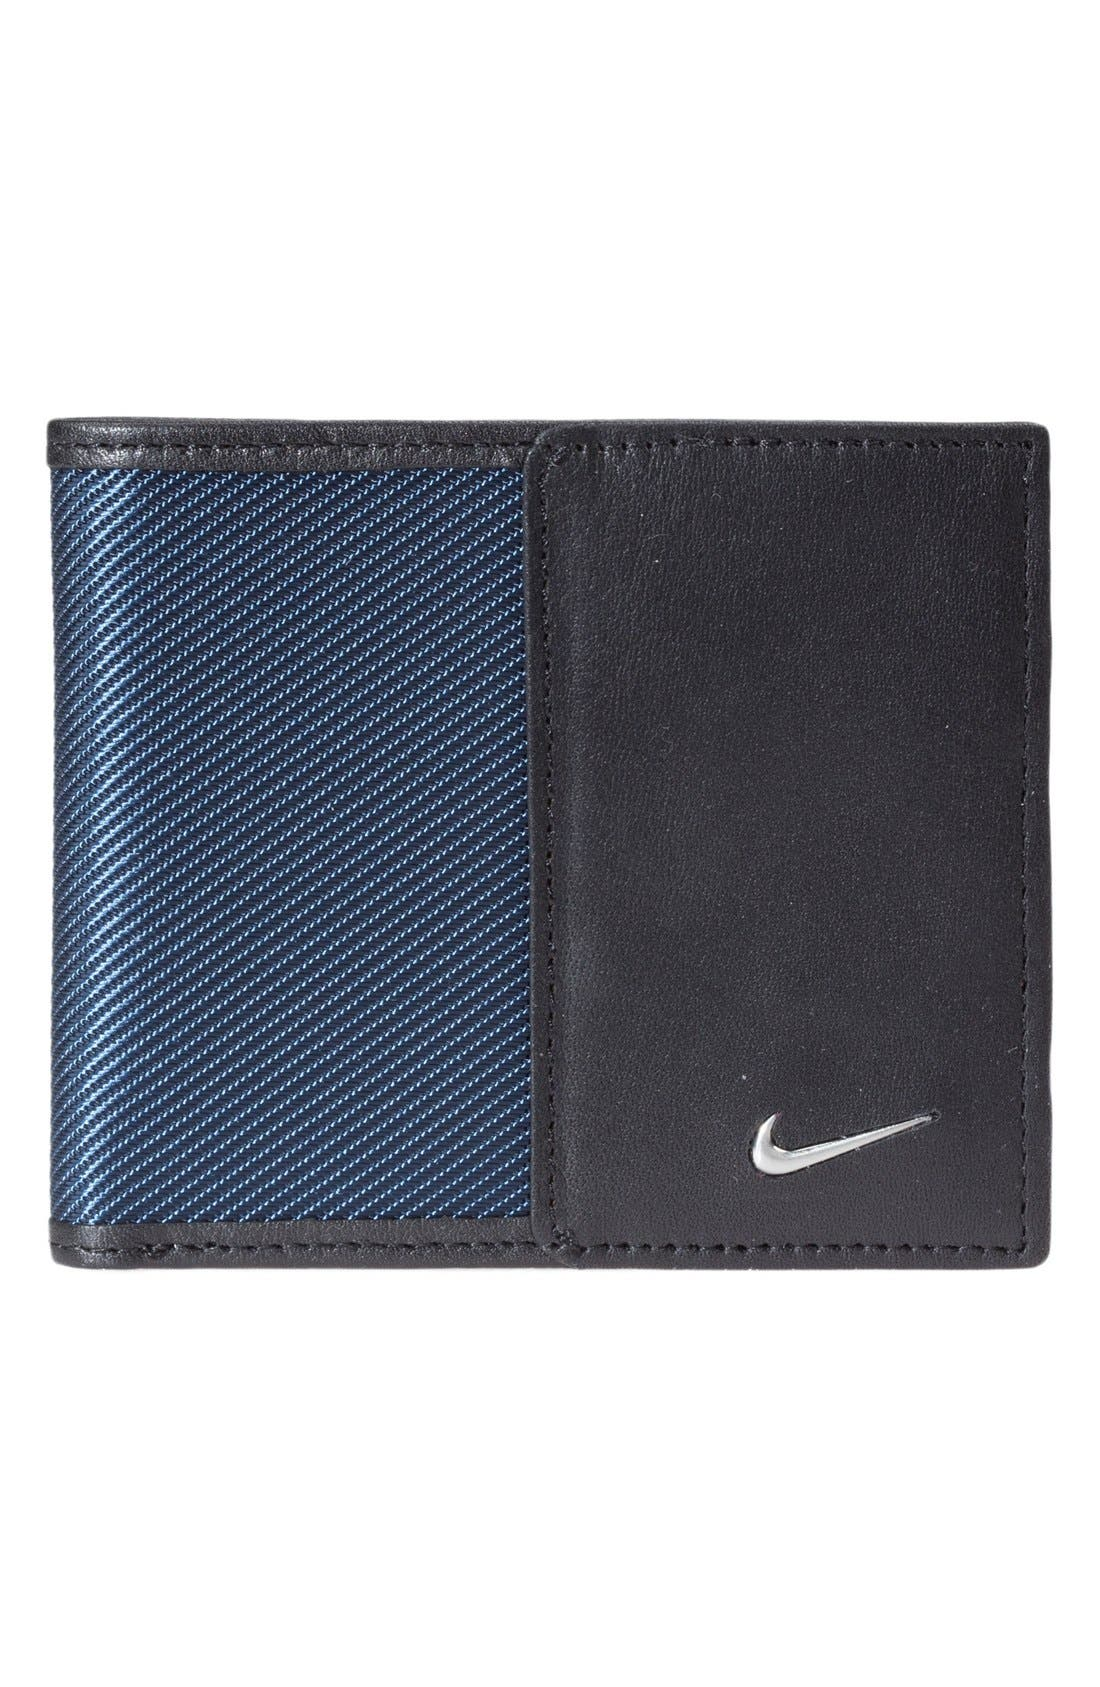 Tech Twill Wallet,                         Main,                         color, Navy